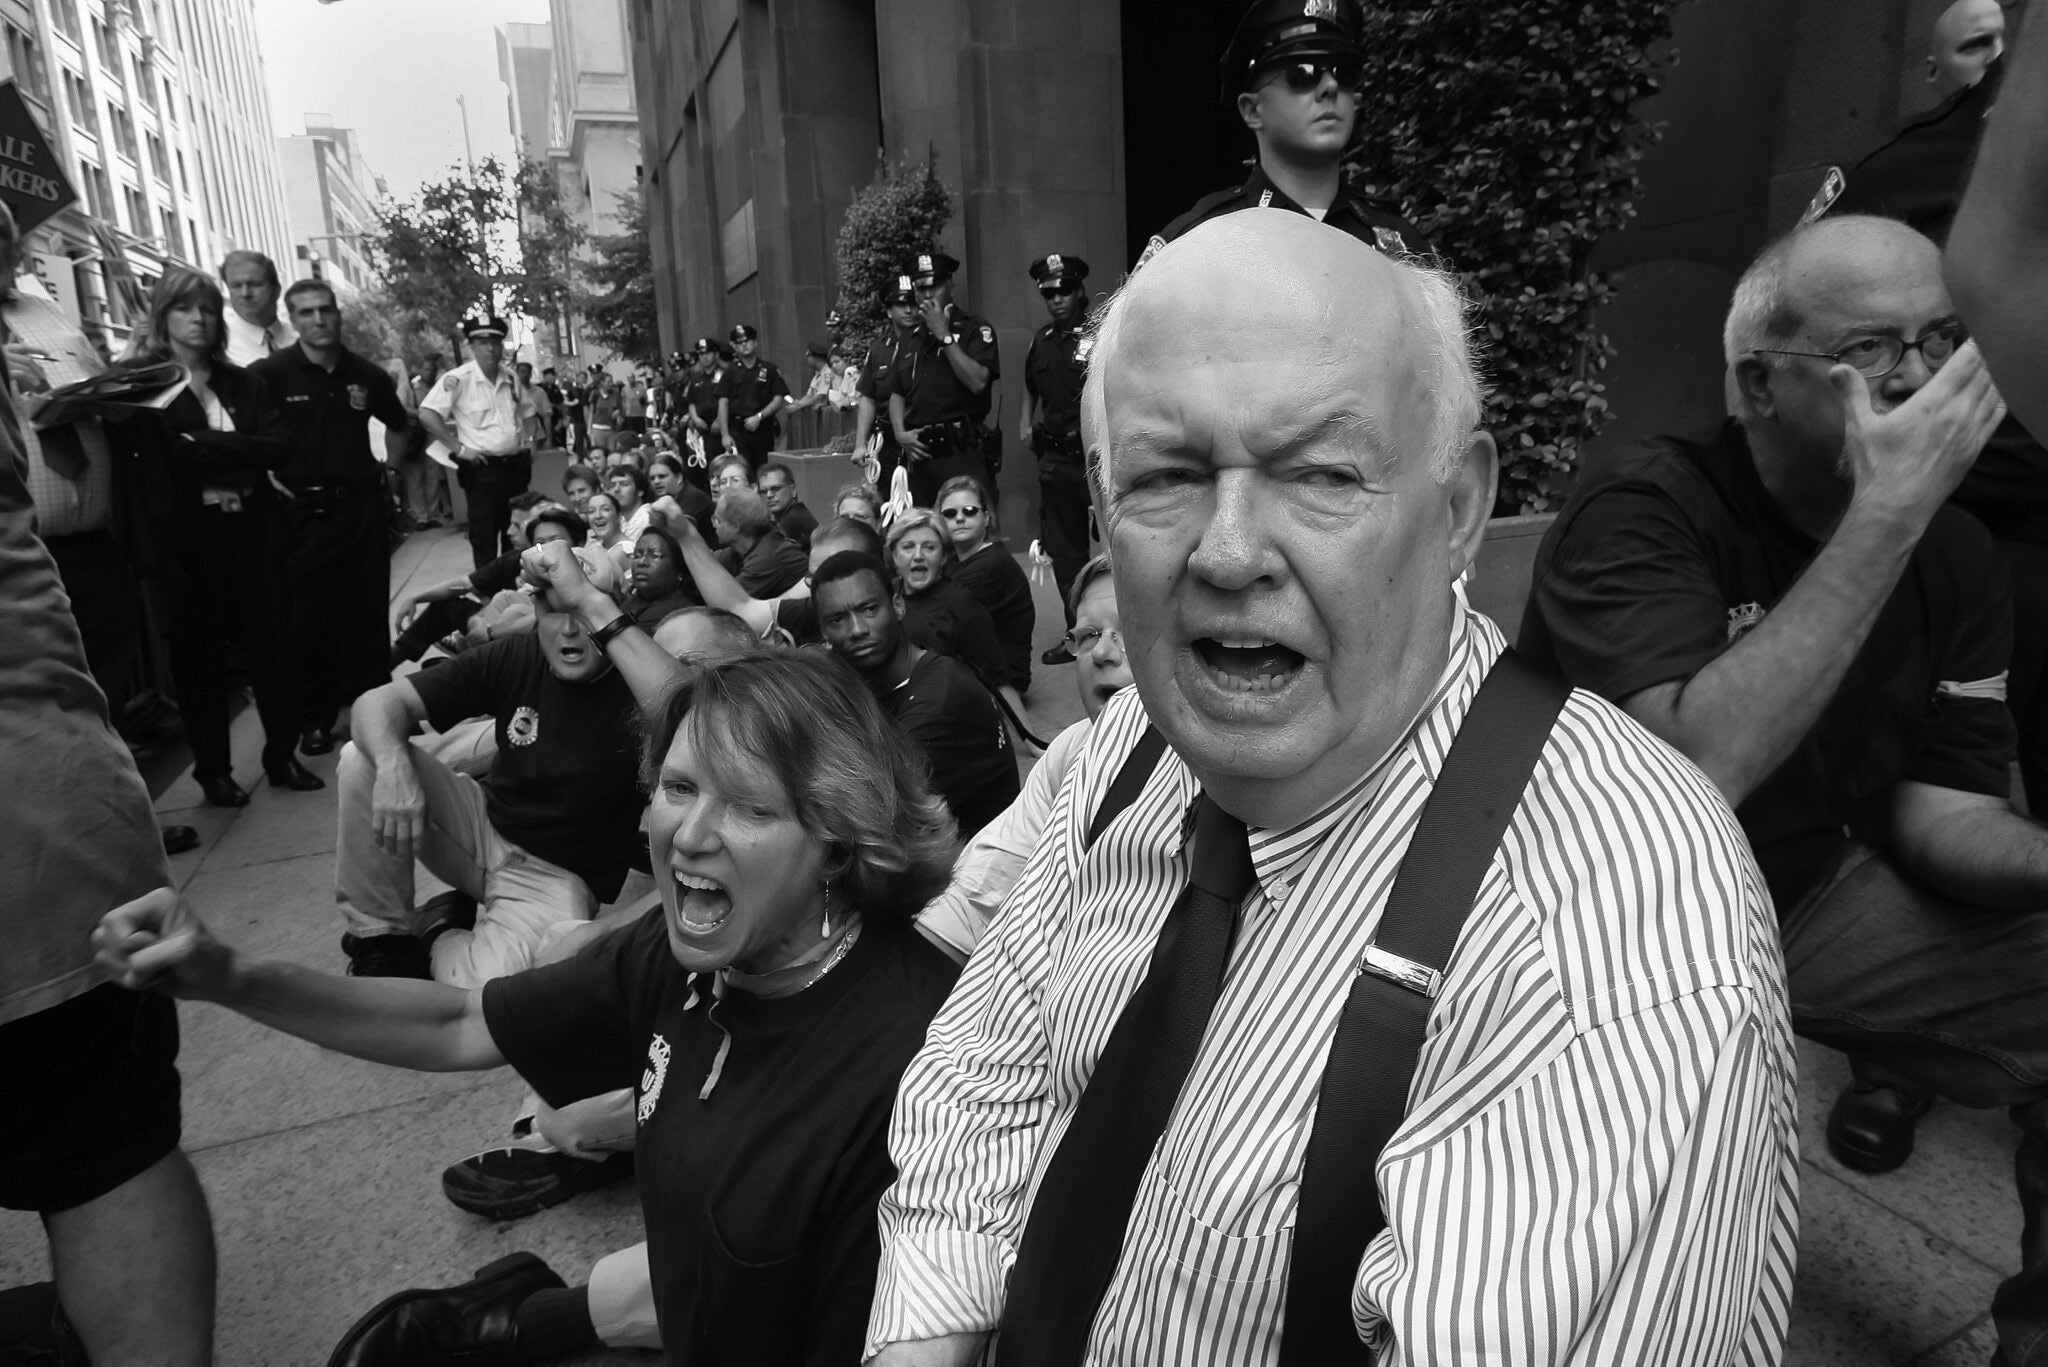 John Sweeney in 2005 at New York University in Manhattan during a protest by graduate assistants in a contract dispute. One of his priorities  was to expand labor's rank-and-file. Credit: James Estrin/The New York Times